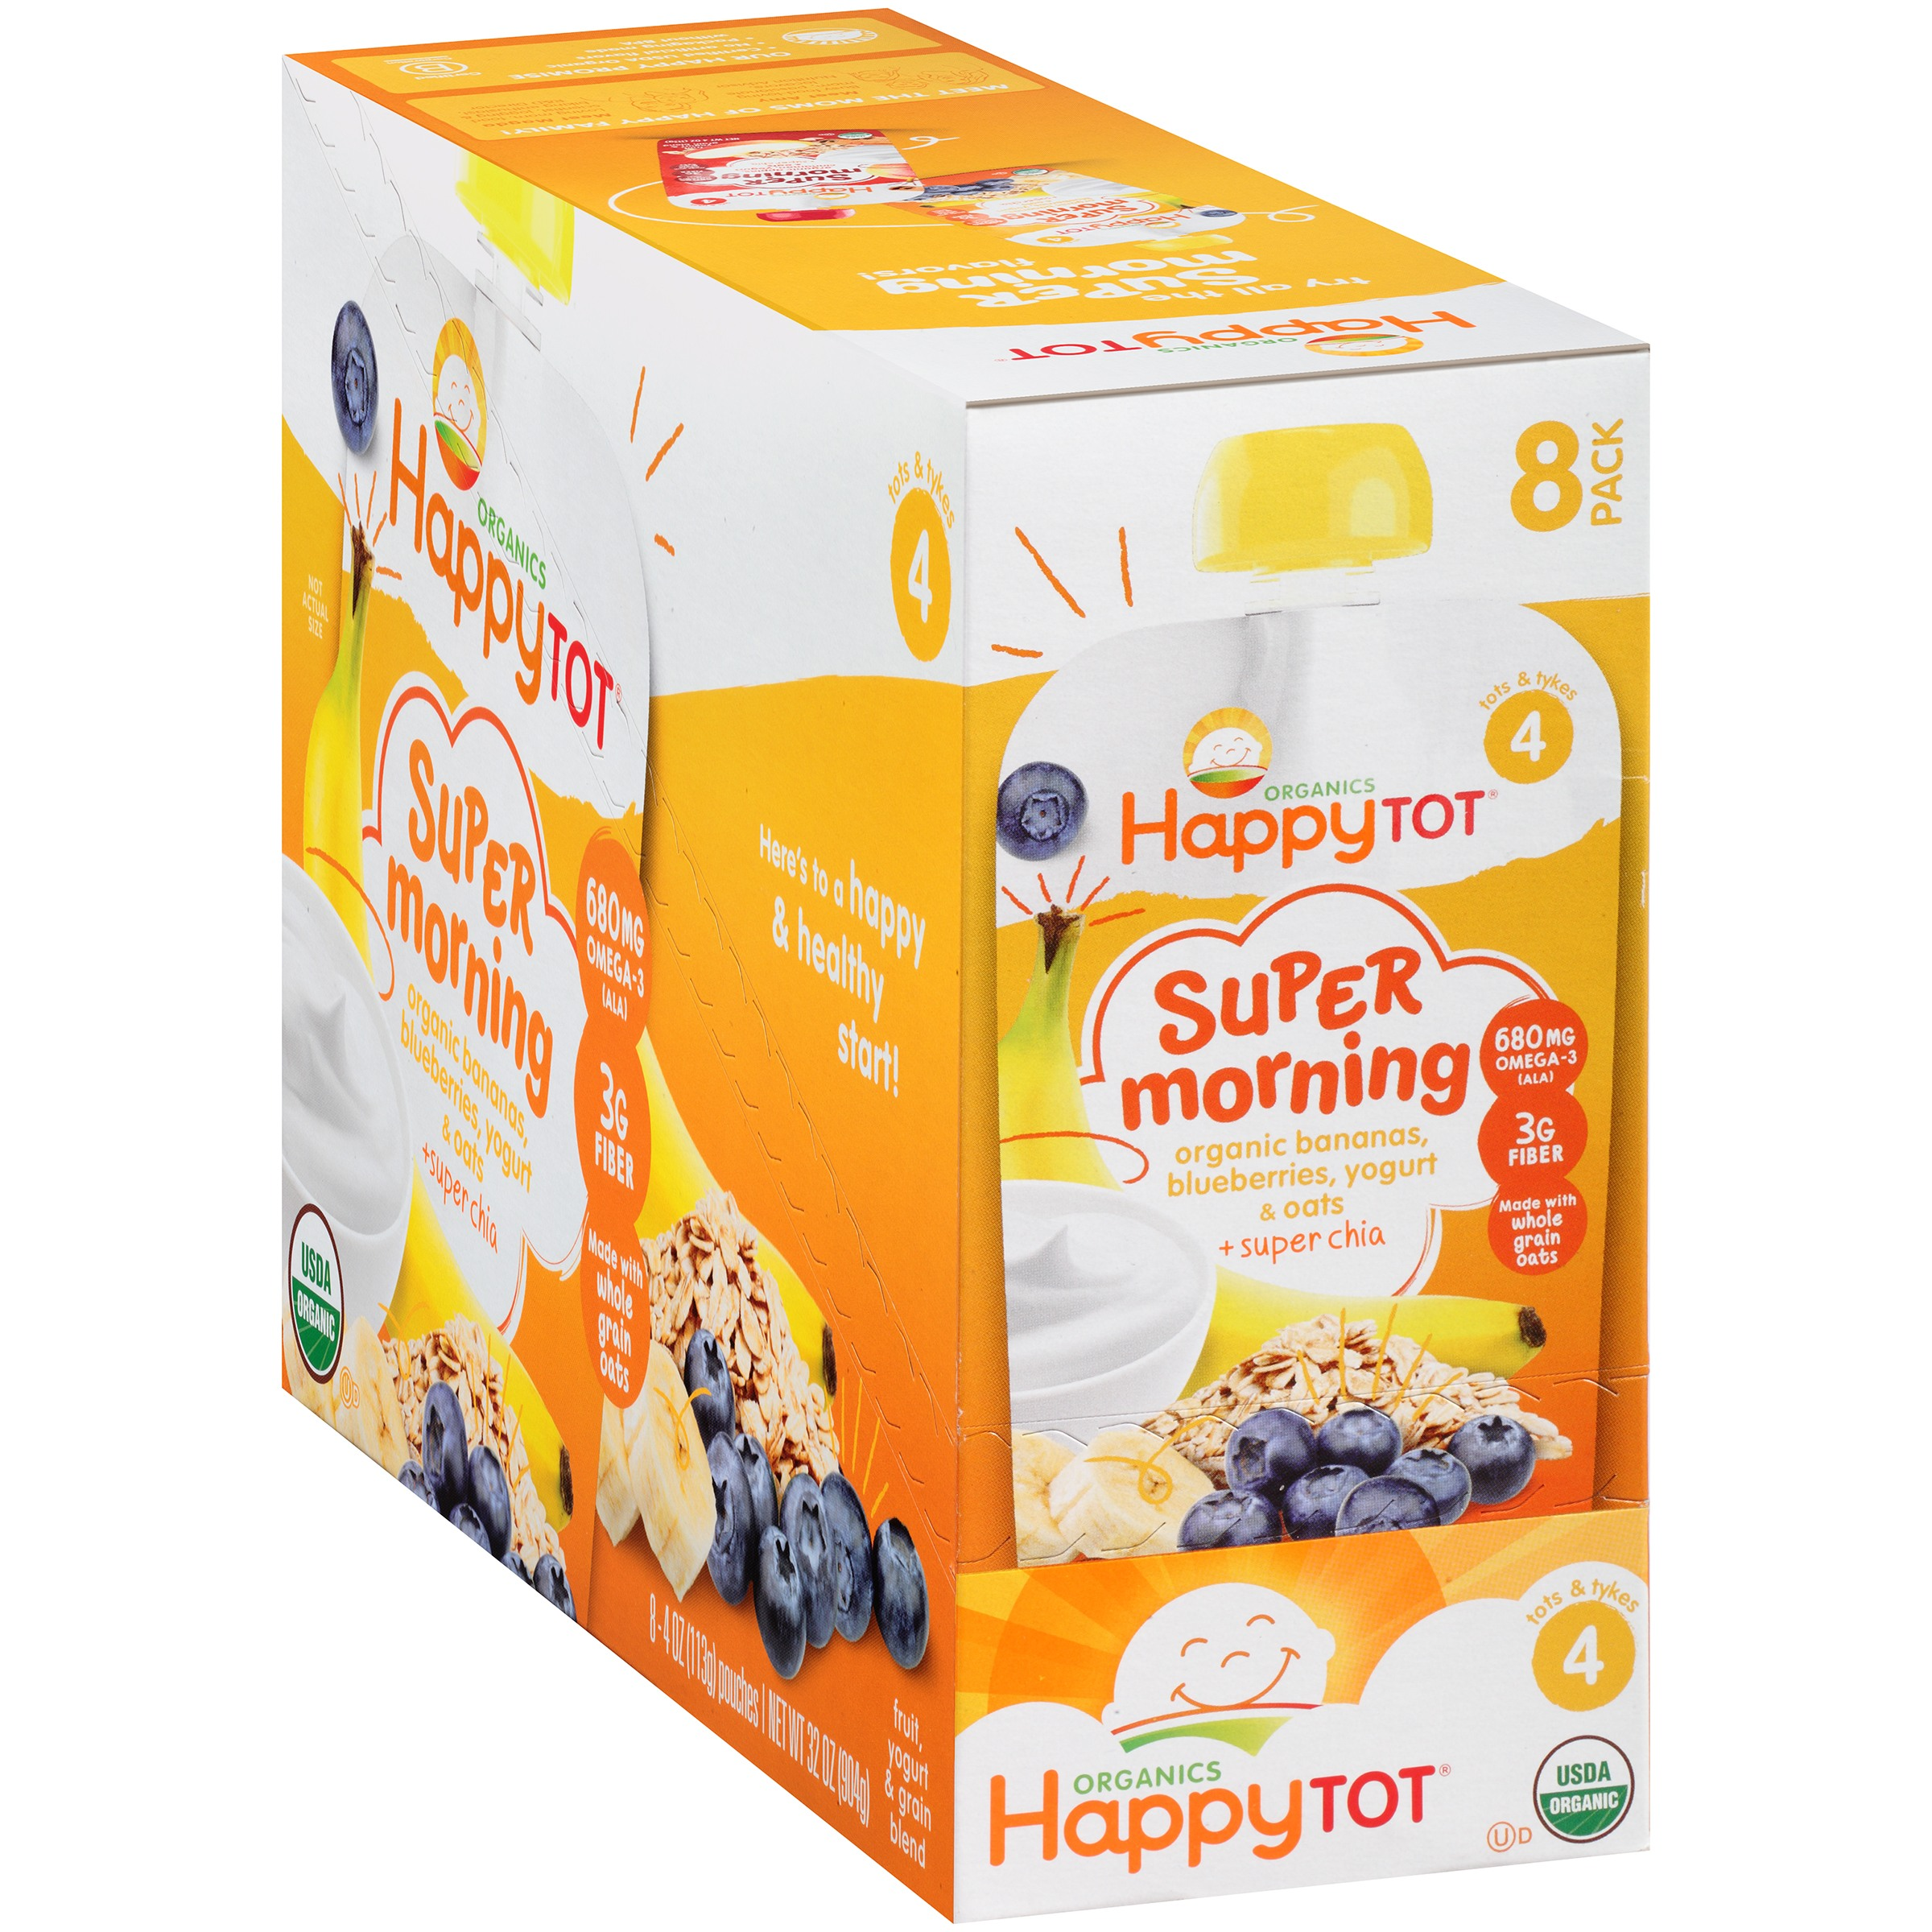 Happy Tot Organics Super Morning Bananas, Blueberries, Yogurt & Oats + Super Chia Organic Stage 4 Baby Food, 4 oz, 8 count